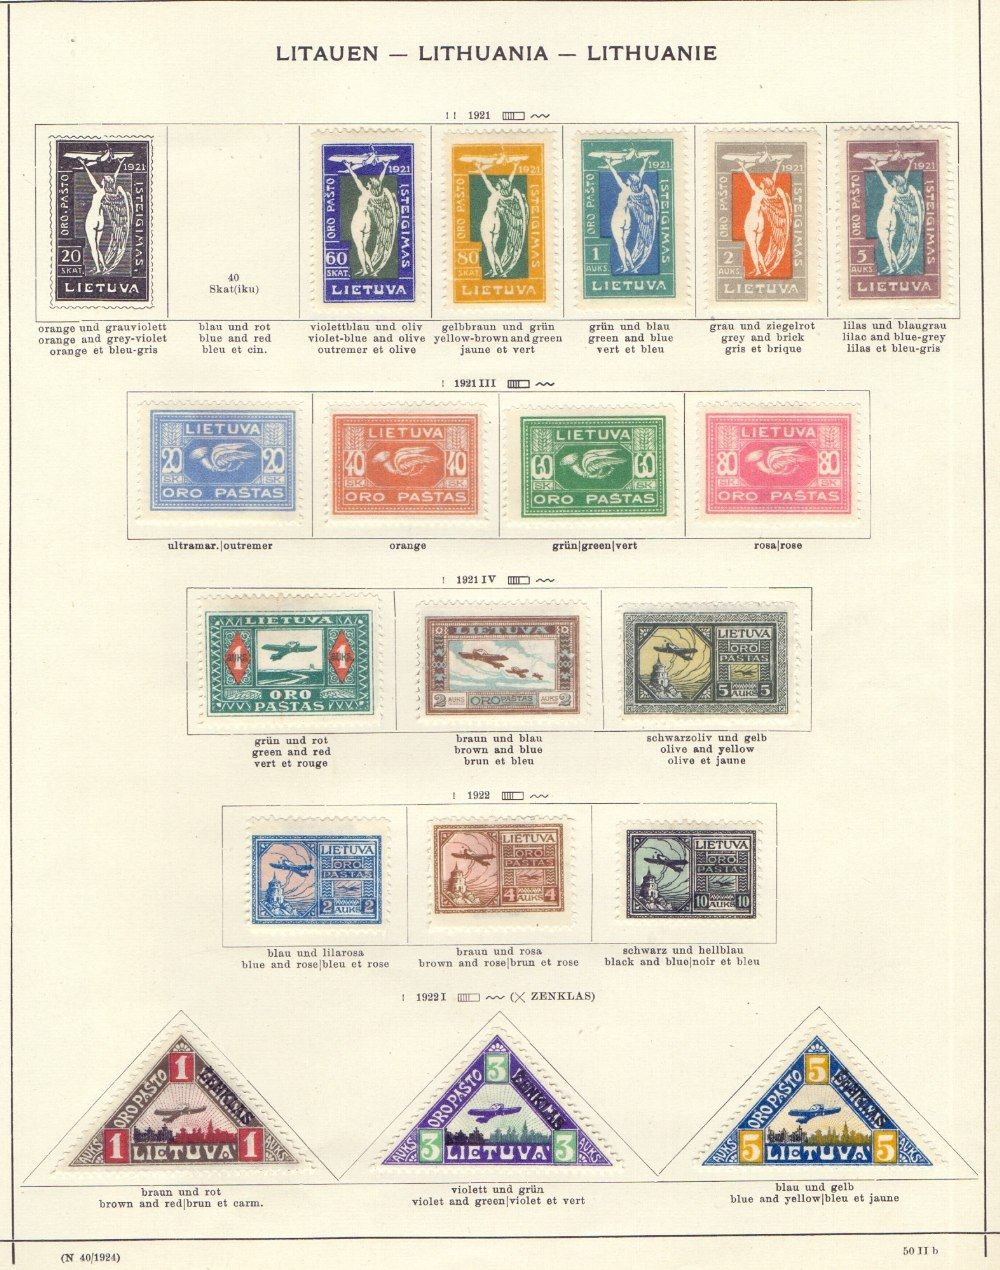 Lot 12 - STAMPS : BALTIC STATES, mint & used collection on printed album pages with many useful sets etc.